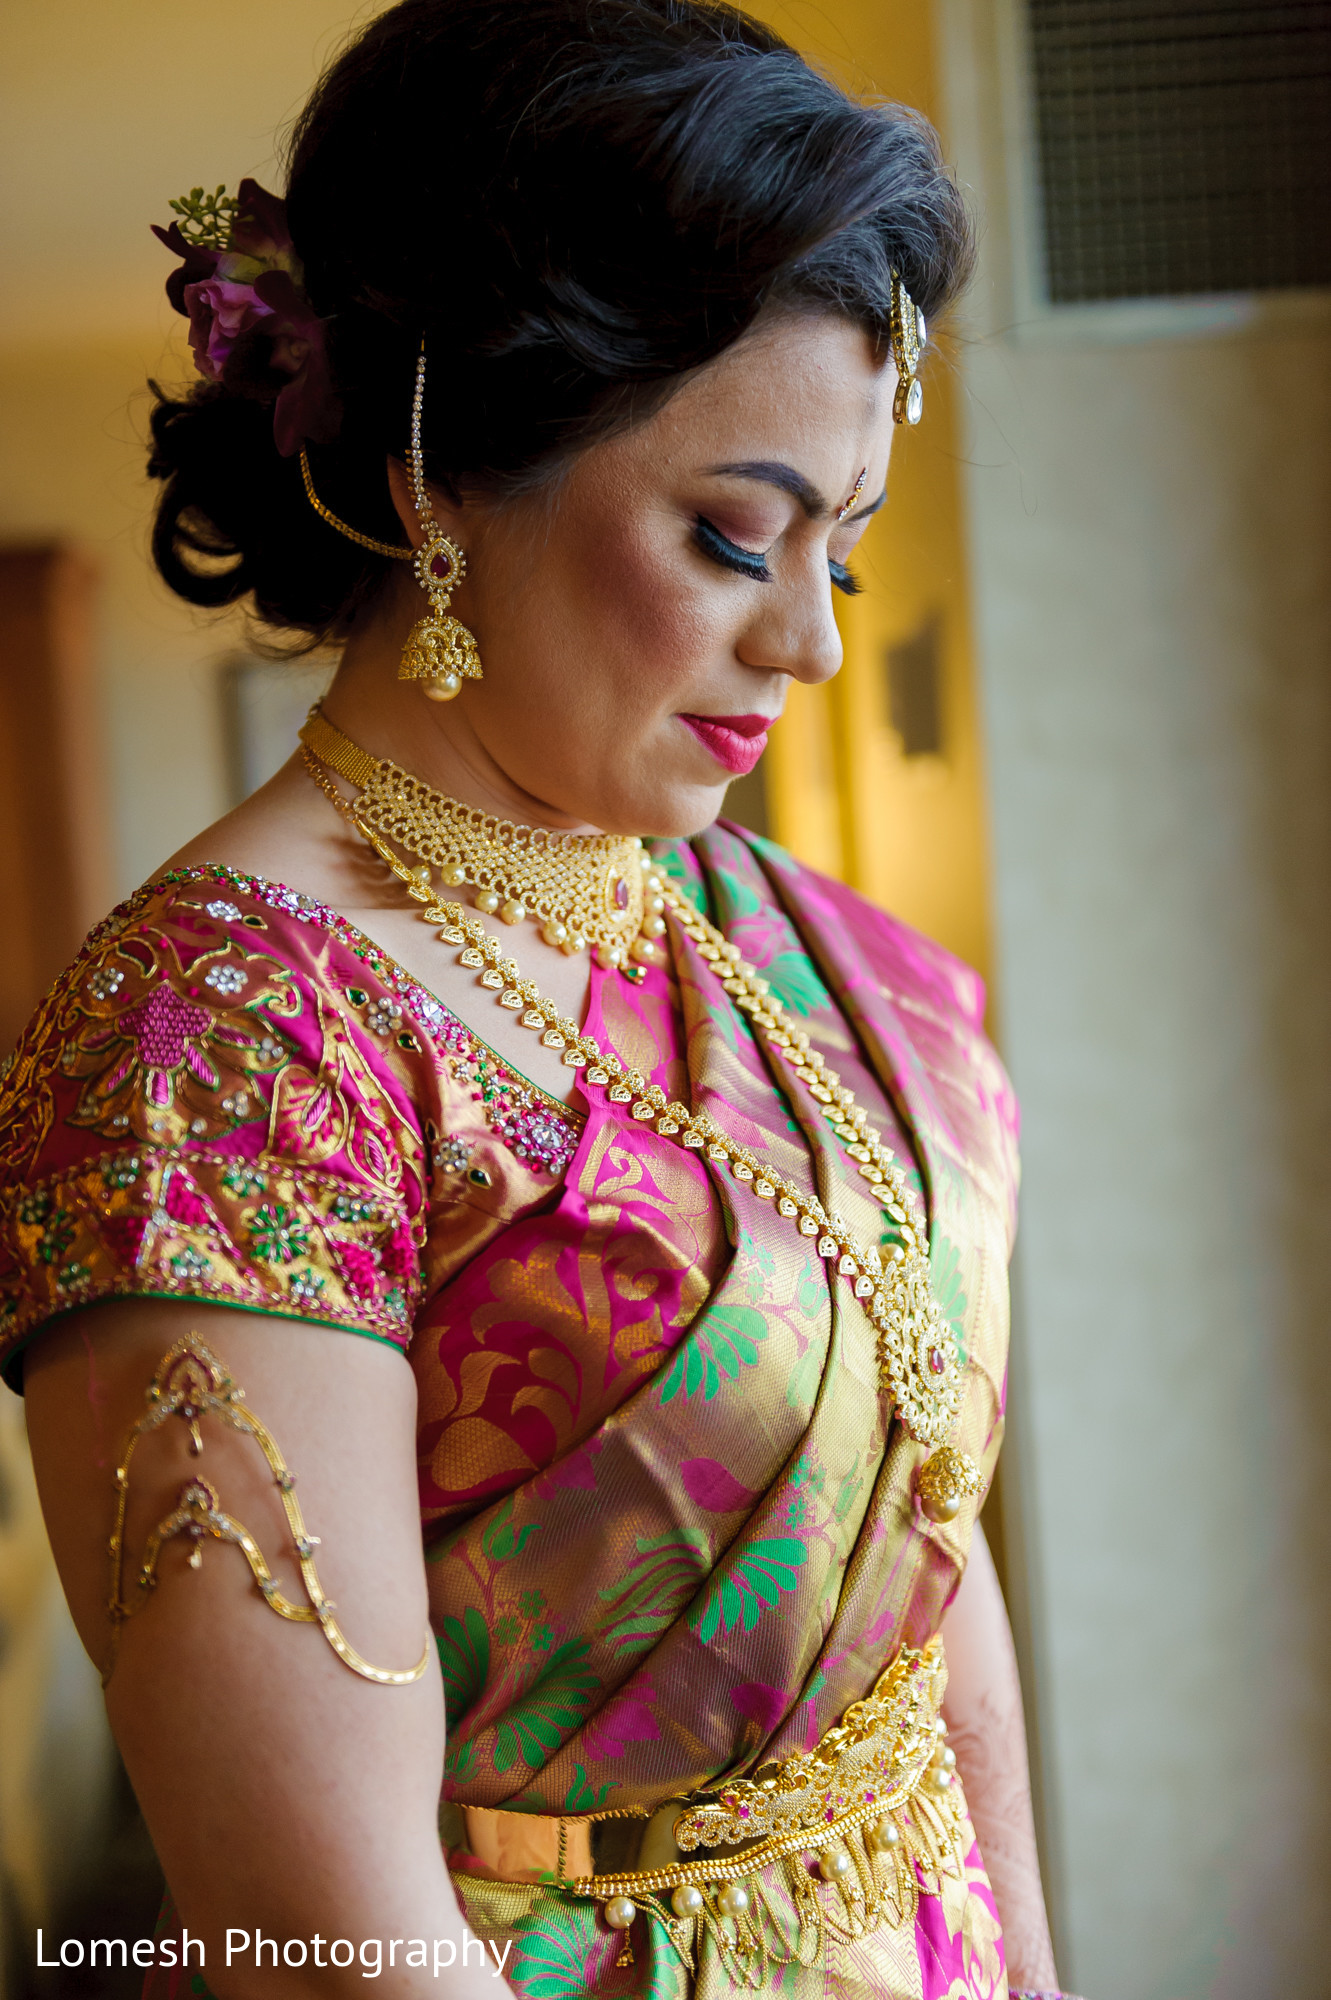 dallas, tx indian wedding by lomesh photography | maharani weddings